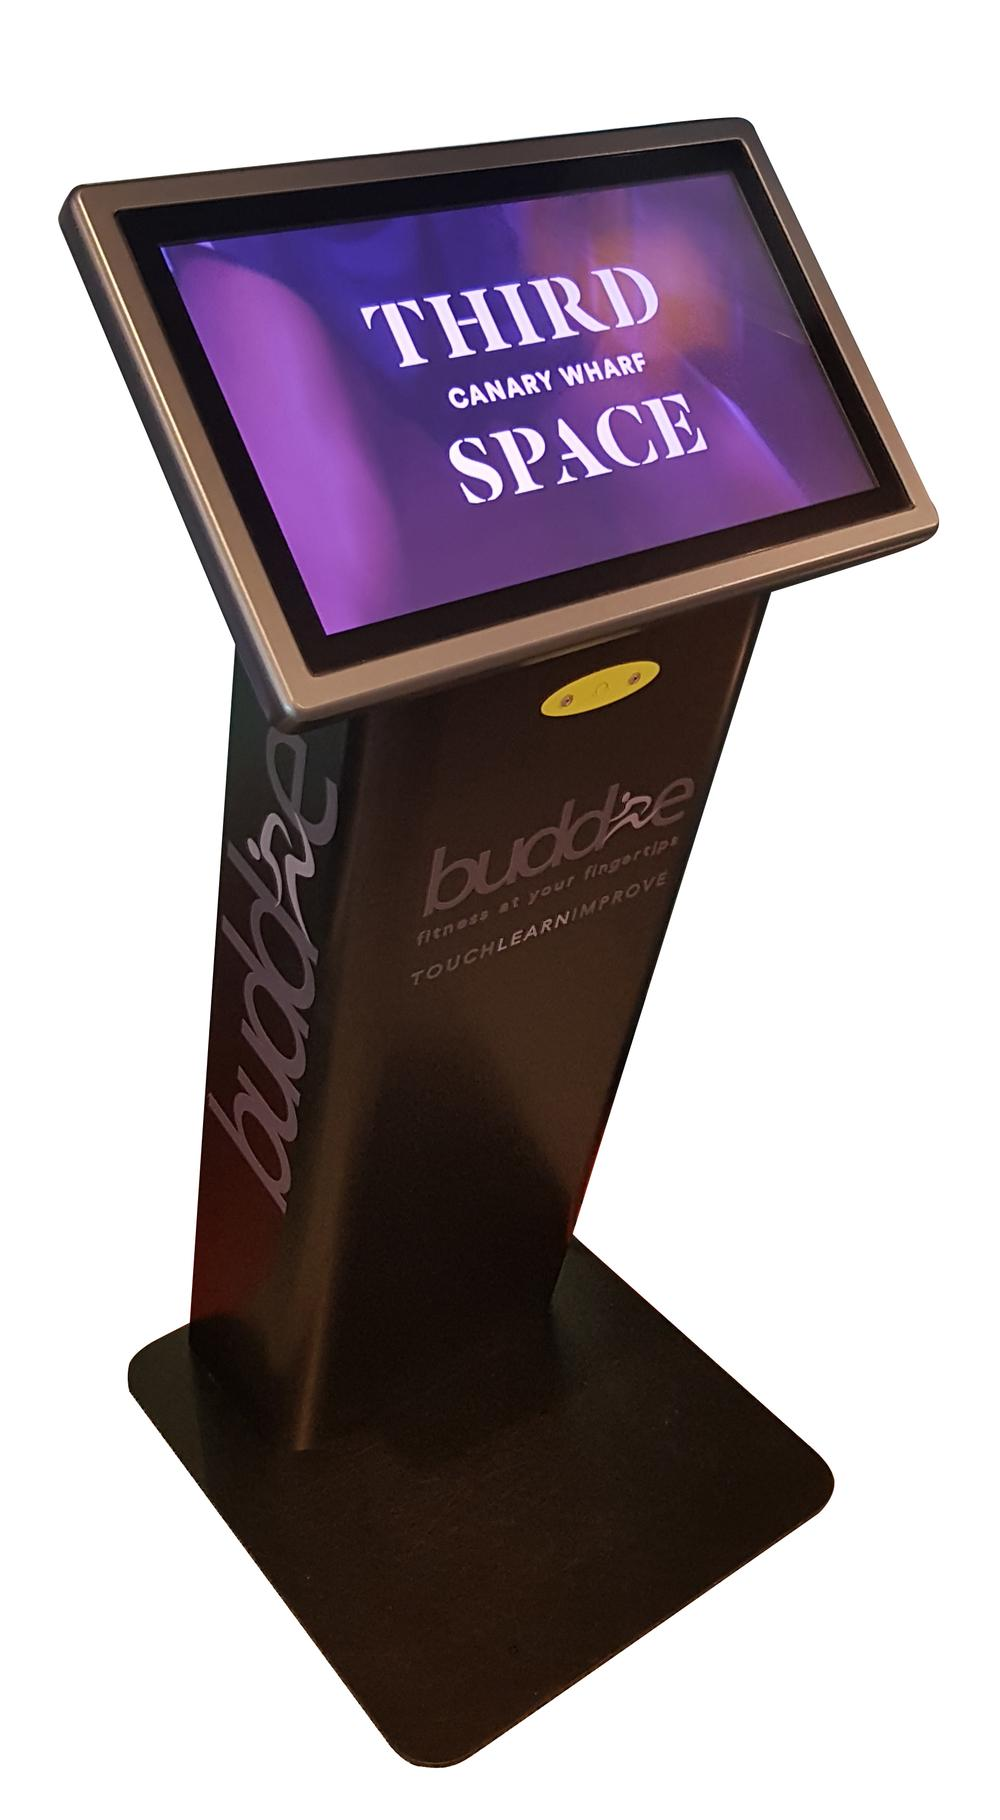 Third Space, Canary Wharf in London, is using gym budd-e to improve the member experience